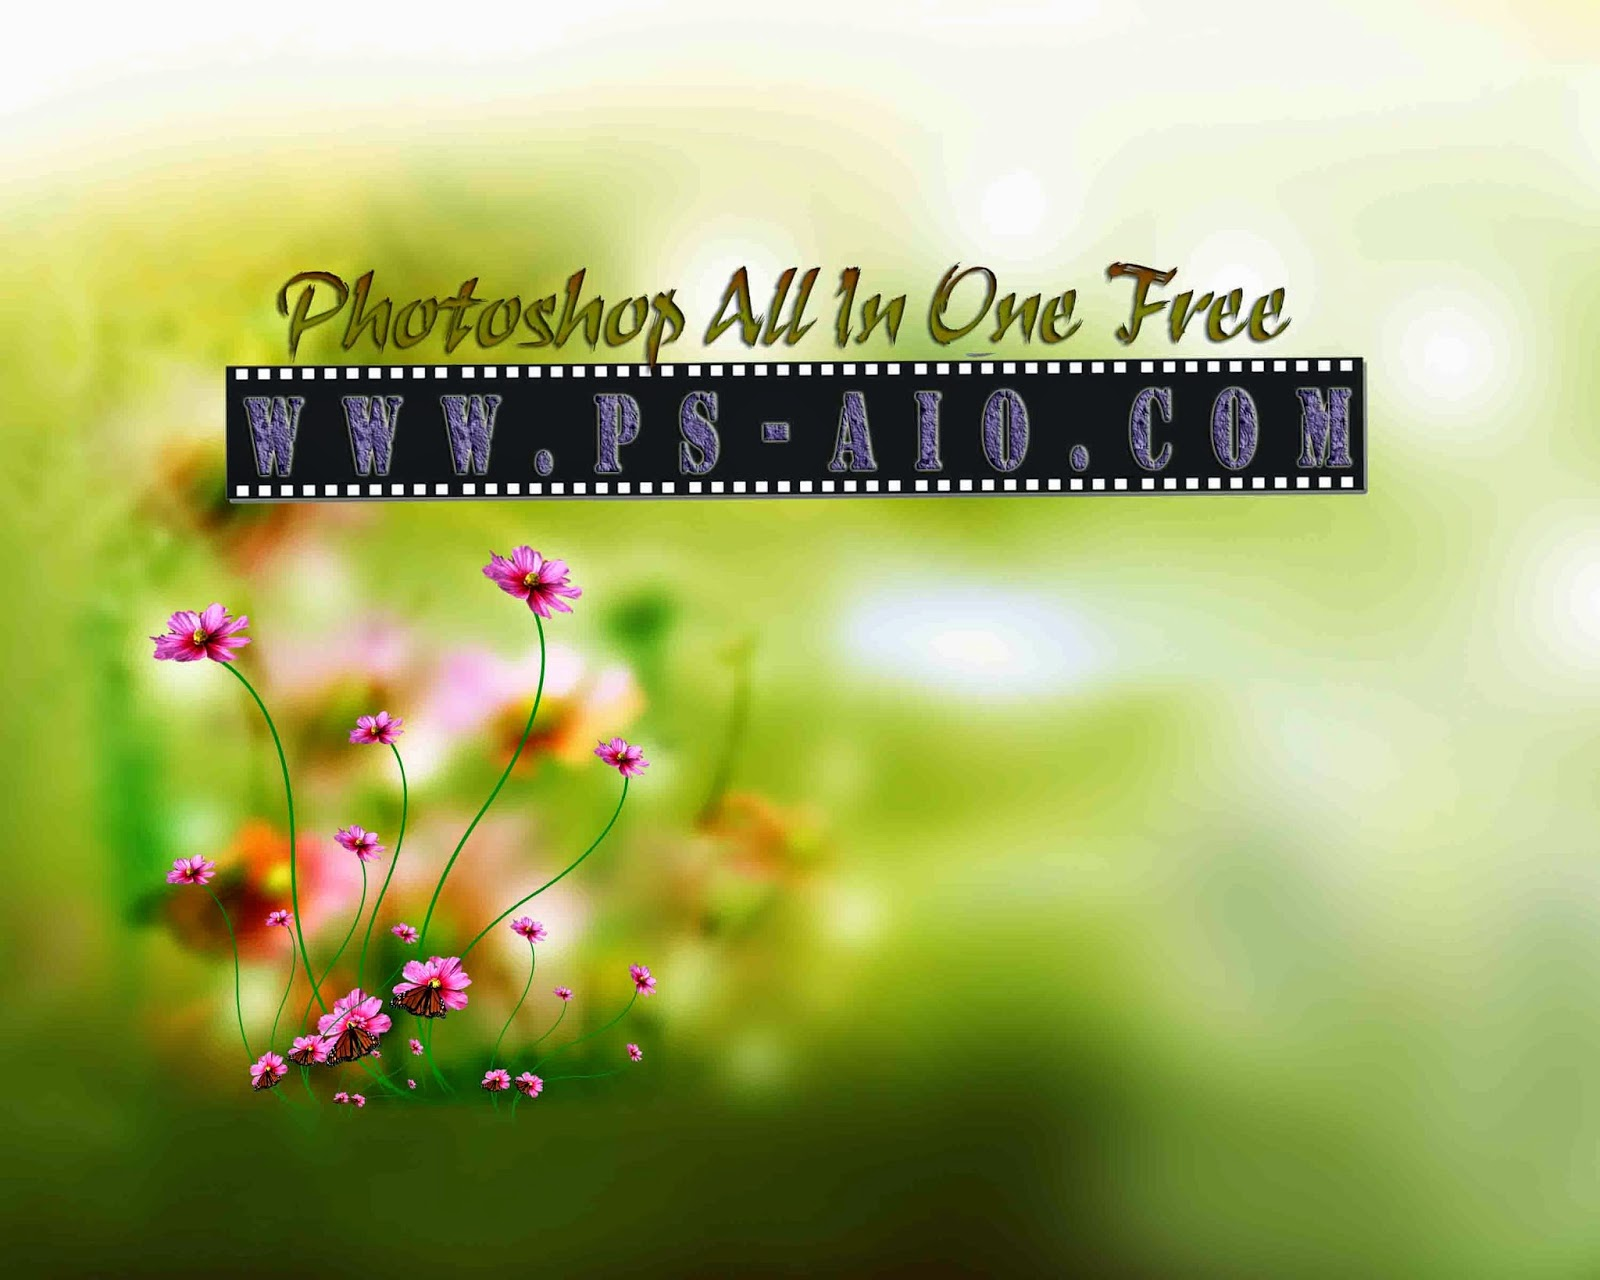 Photoshop Indian Wedding Psd Background Collection Free Download ...